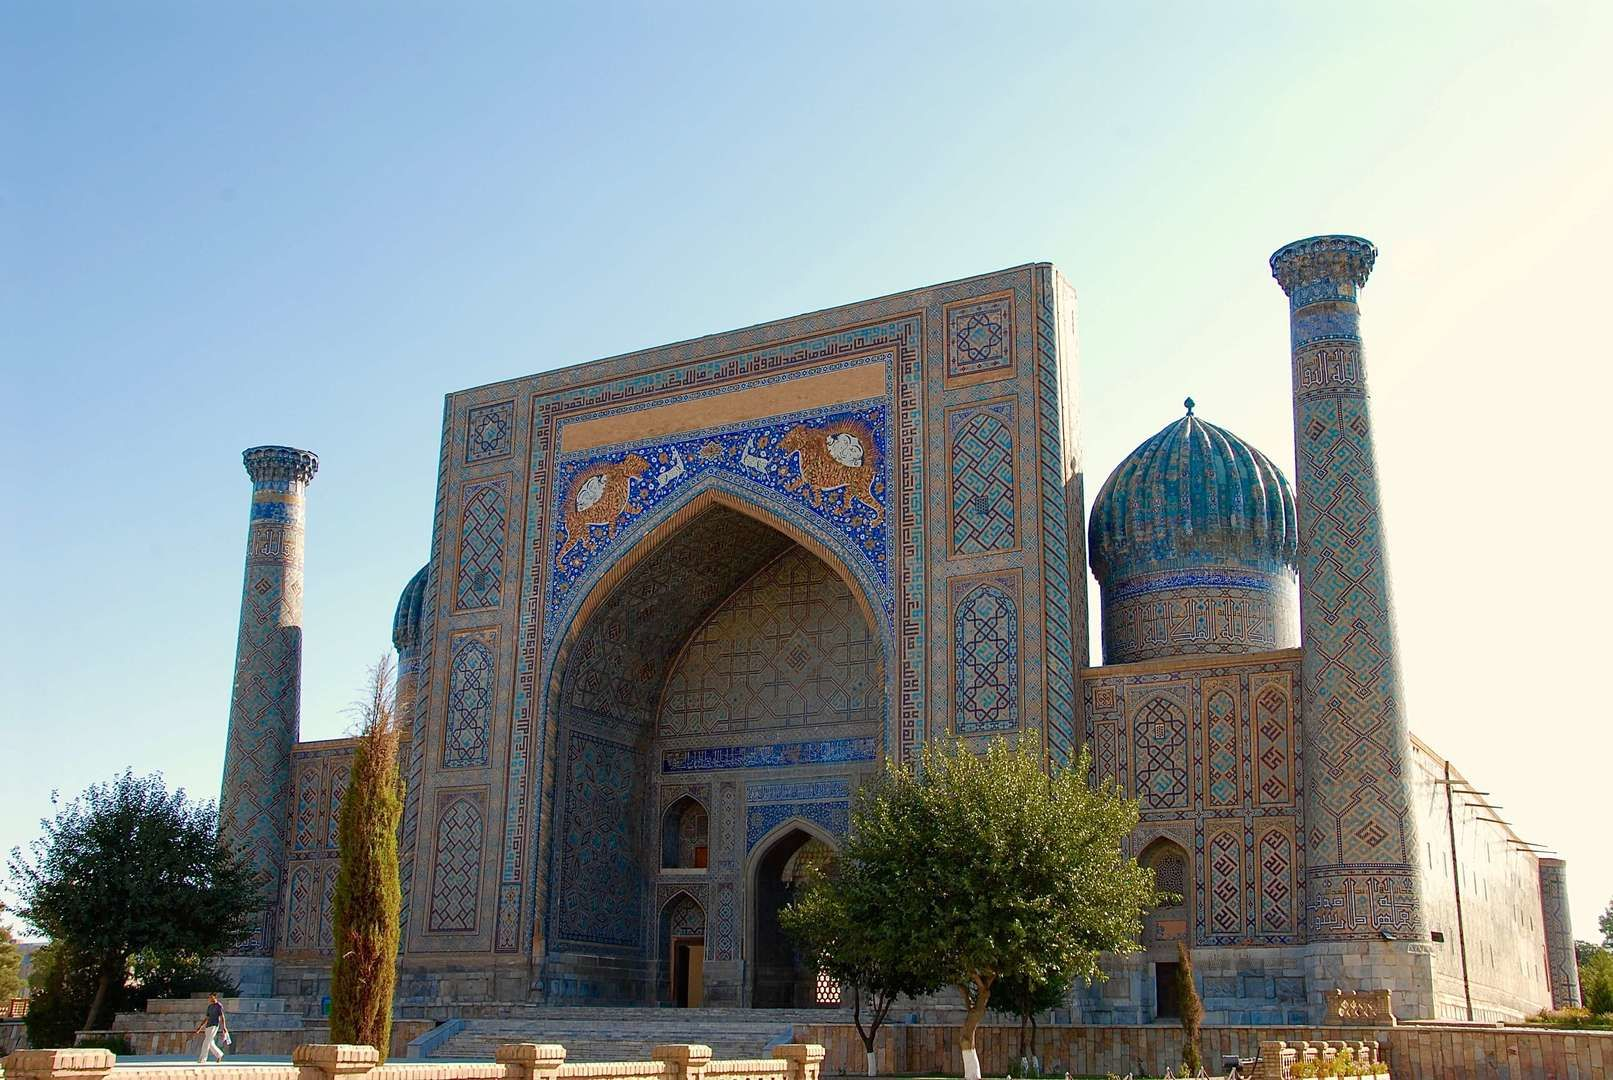 Sher-Dor Madrasha on Registan Square in Samarkand